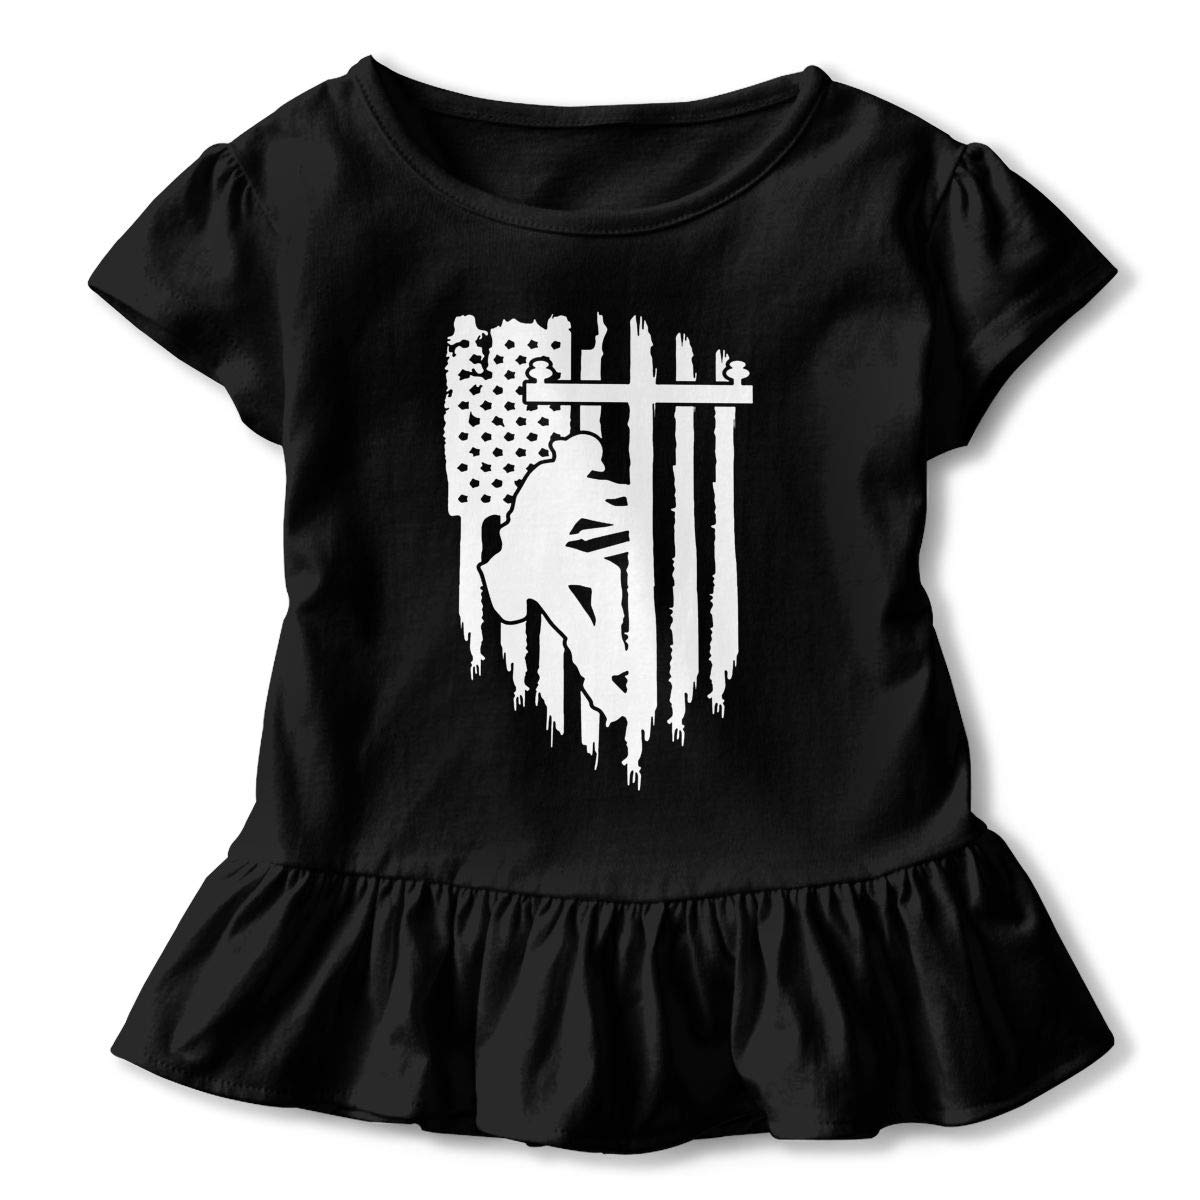 ZP-CCYF American Flag Electric Cable Lineman Toddler Baby Girl Ruffle Short Sleeve T-Shirt Comfortable Cotton T Shirts